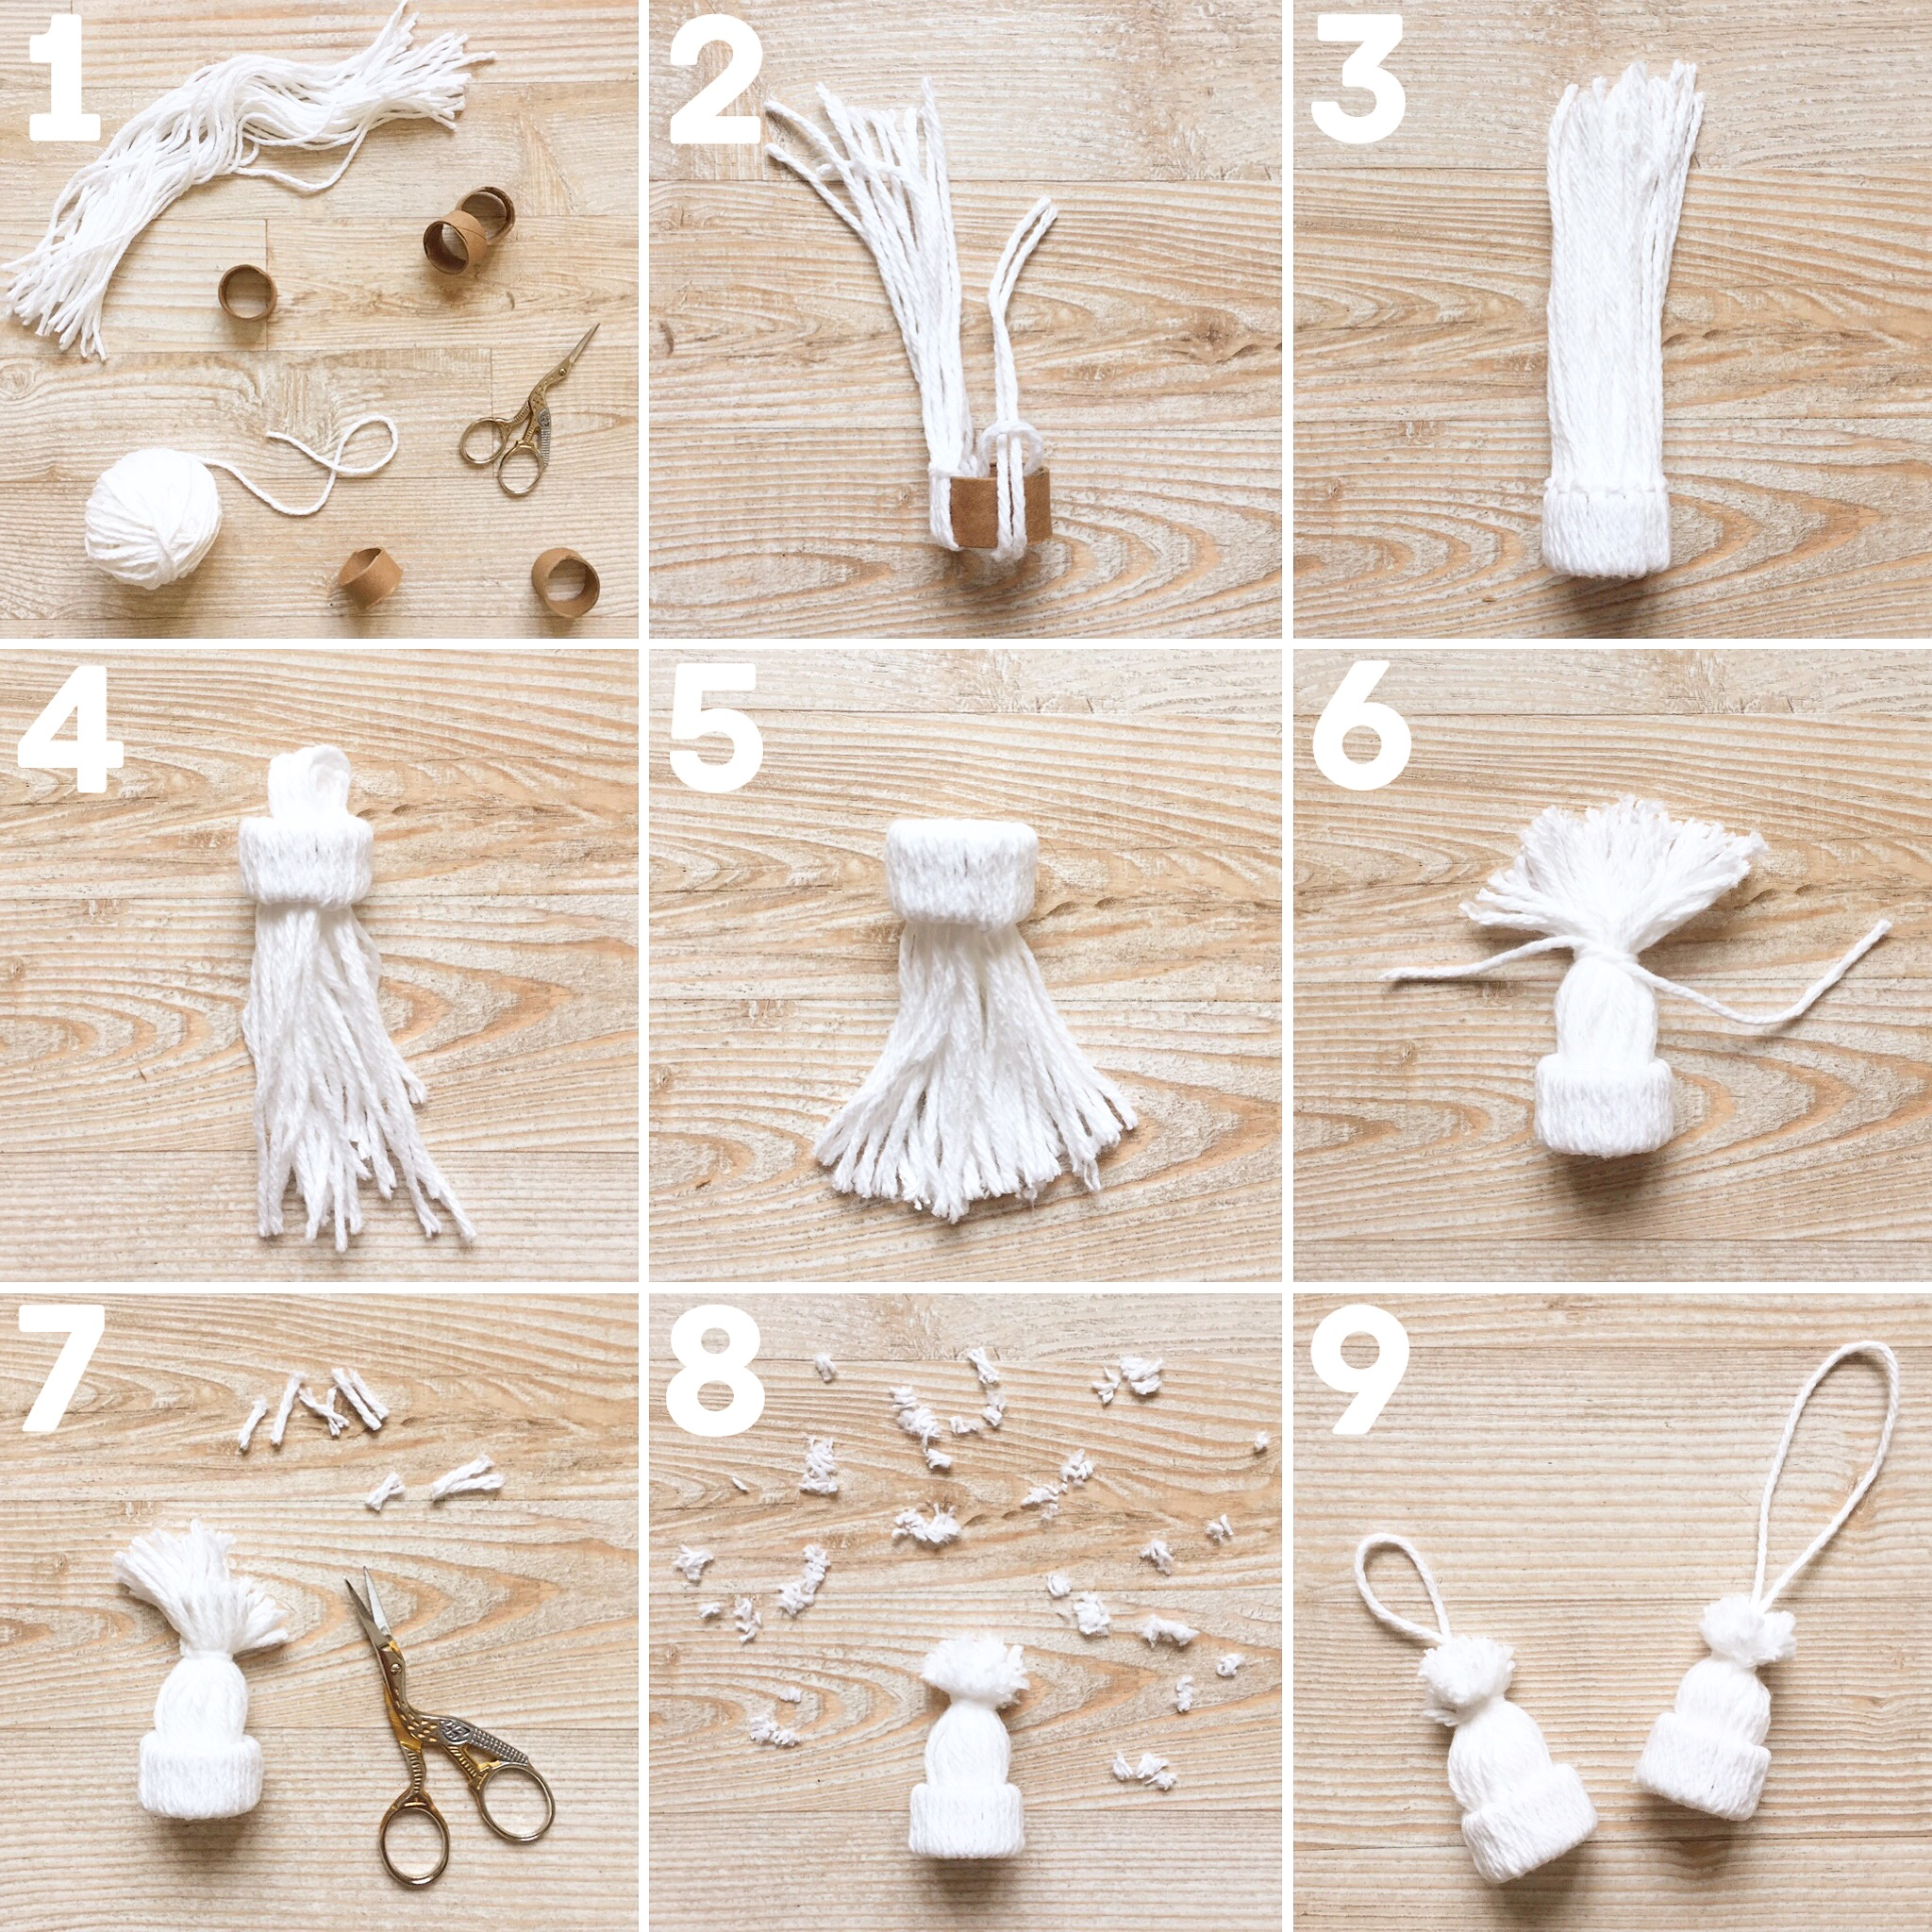 How to make an ornament from yarn. DIT tiny hat ornament